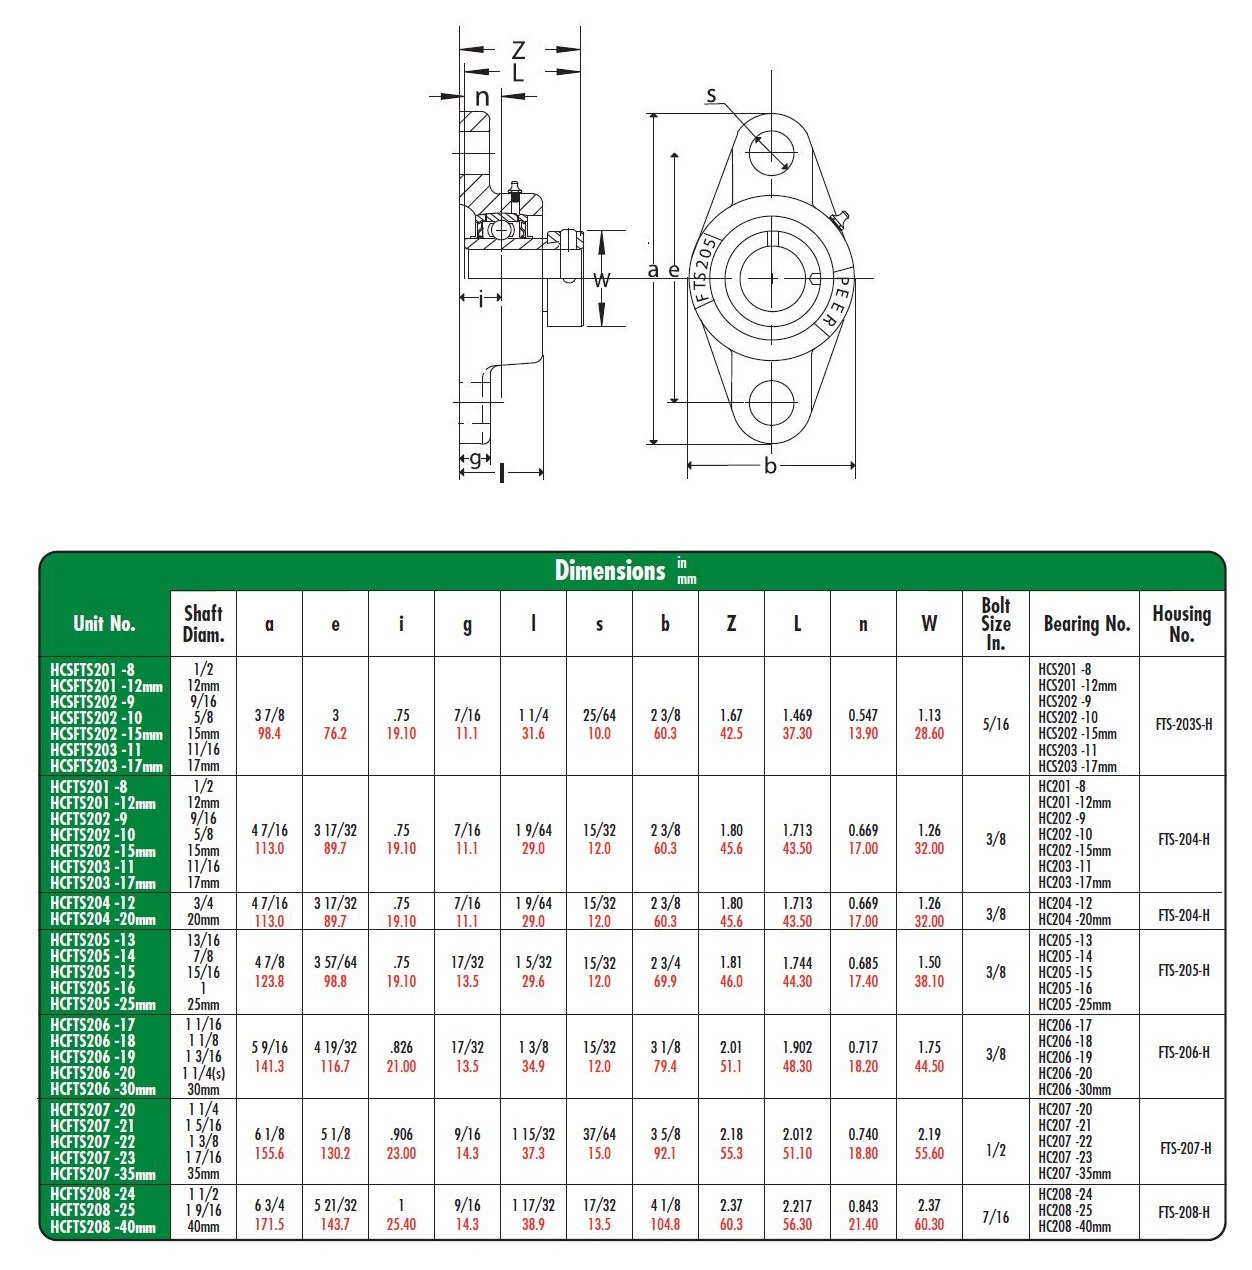 Peer Bearing PER HCFTS208-24 2 Bolt Flange Unit Single Lip Seals Eccentric Locking Collar Cast Iron 5-21//32 Center Length 1-1//2 Bore 5-21//32 Center Length 1-1//2 Bore Relubricable Wide Inner Ring